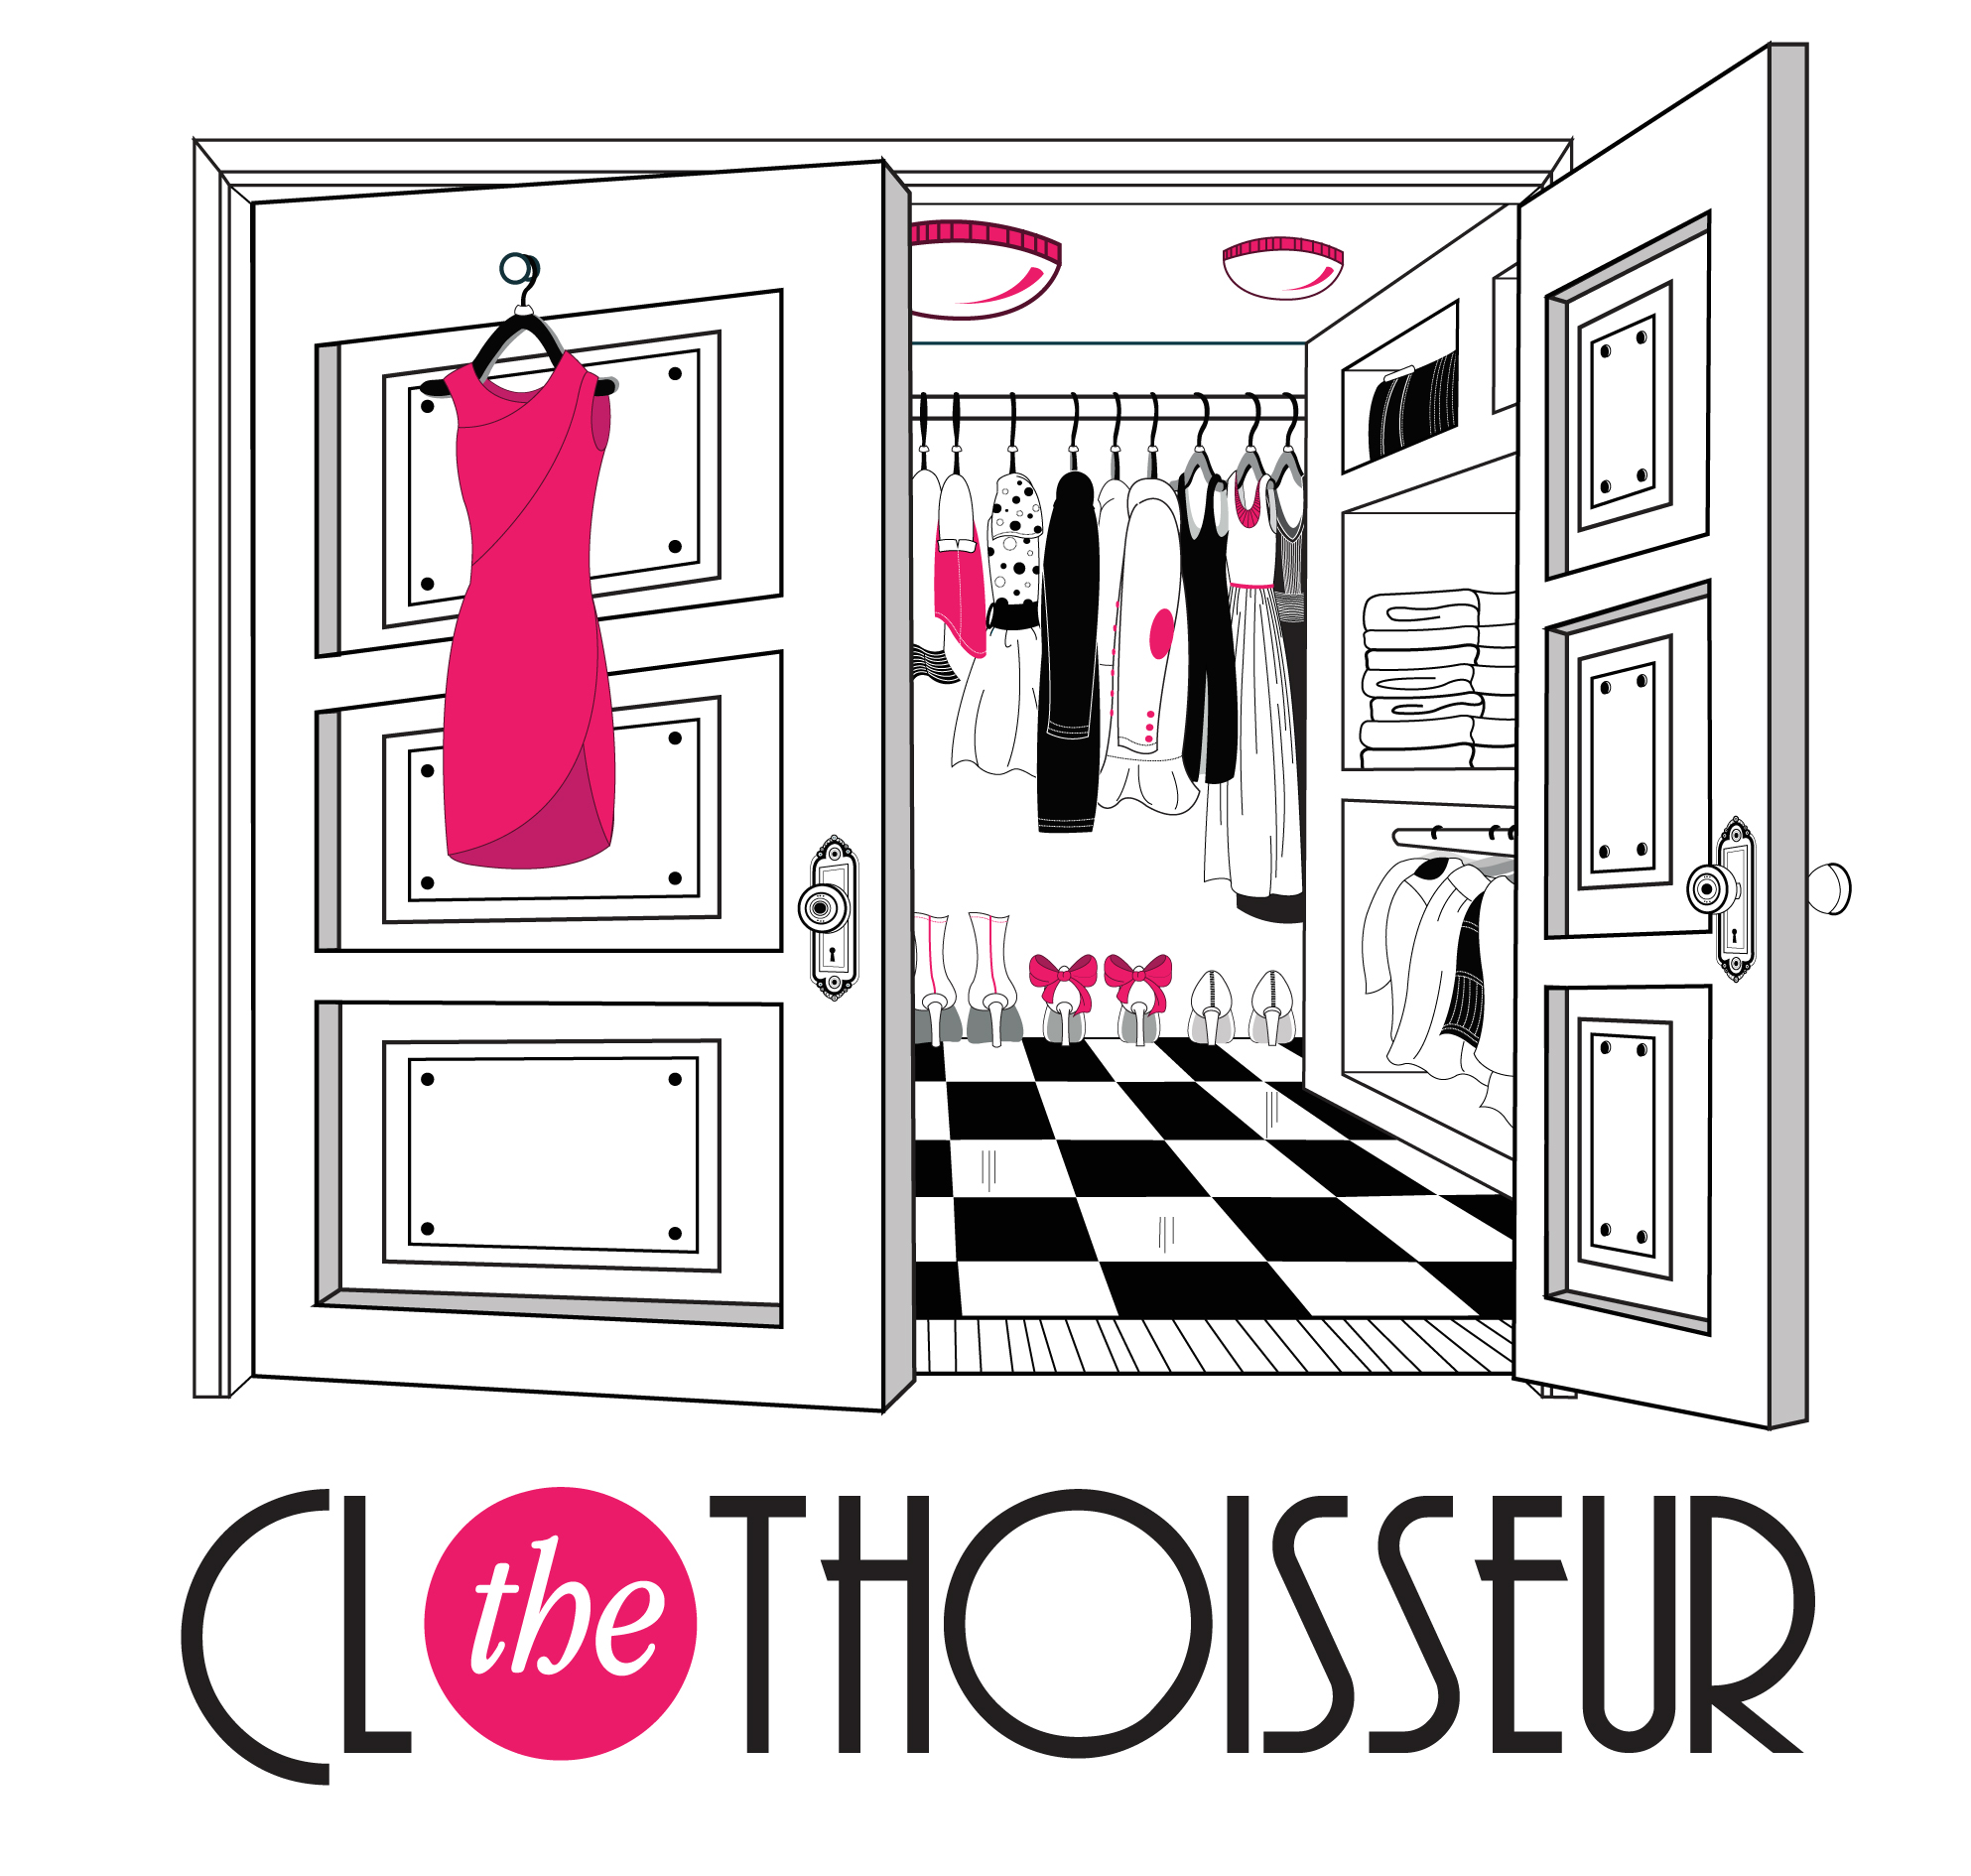 The Clothoisseur